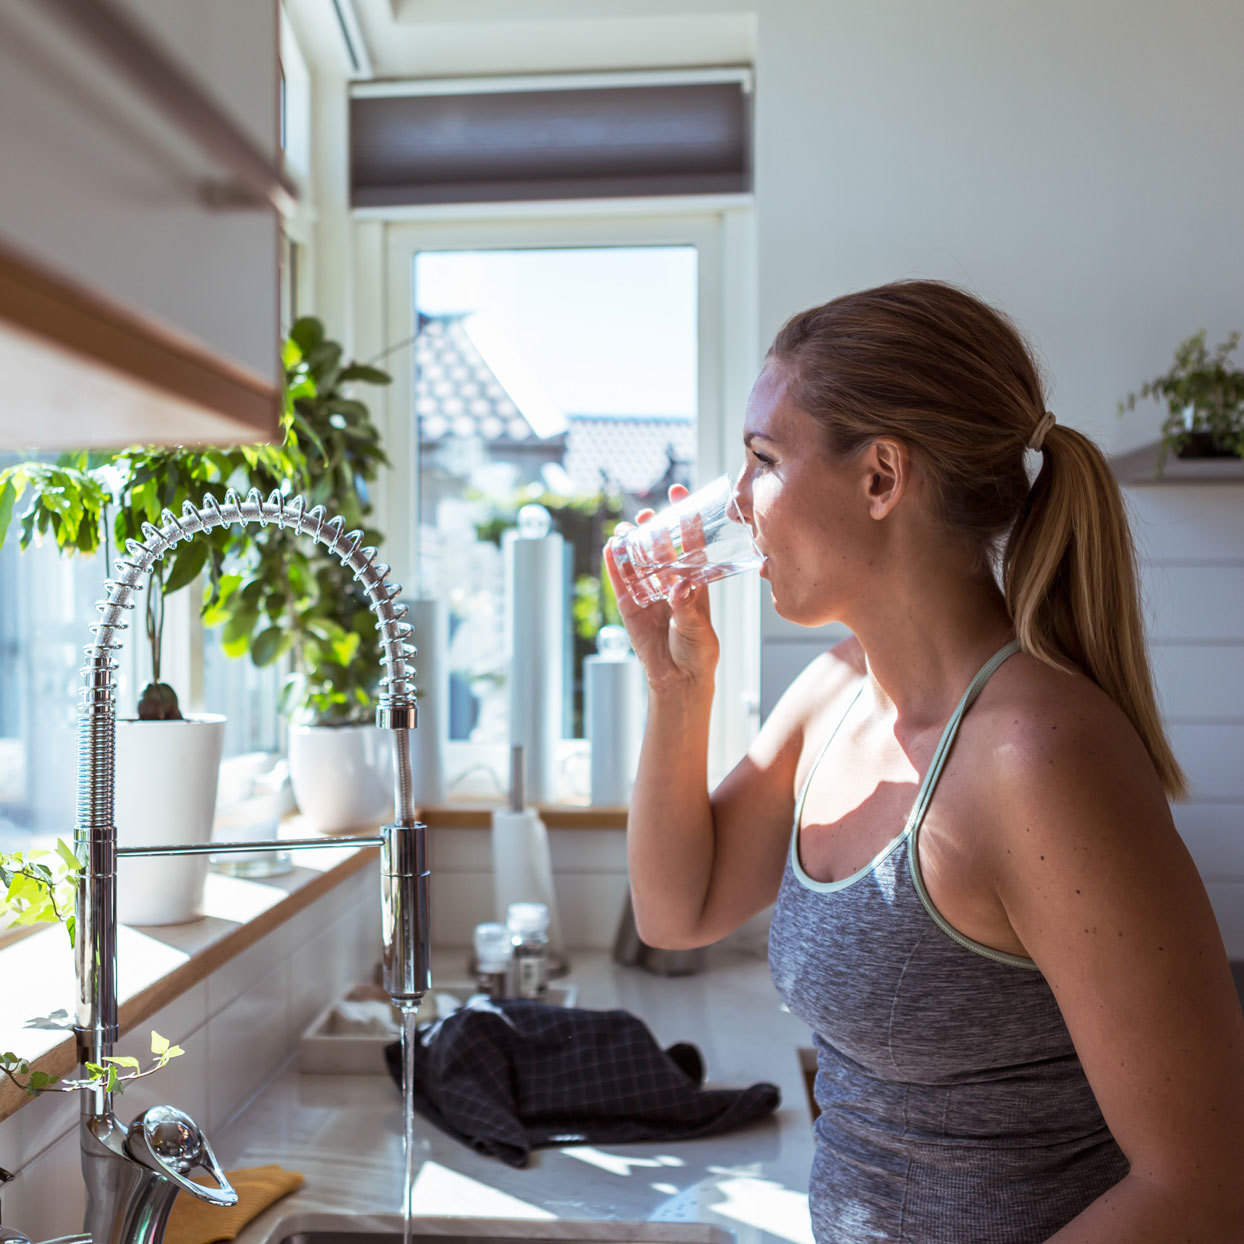 woman drinking a glass of water in a kitchen